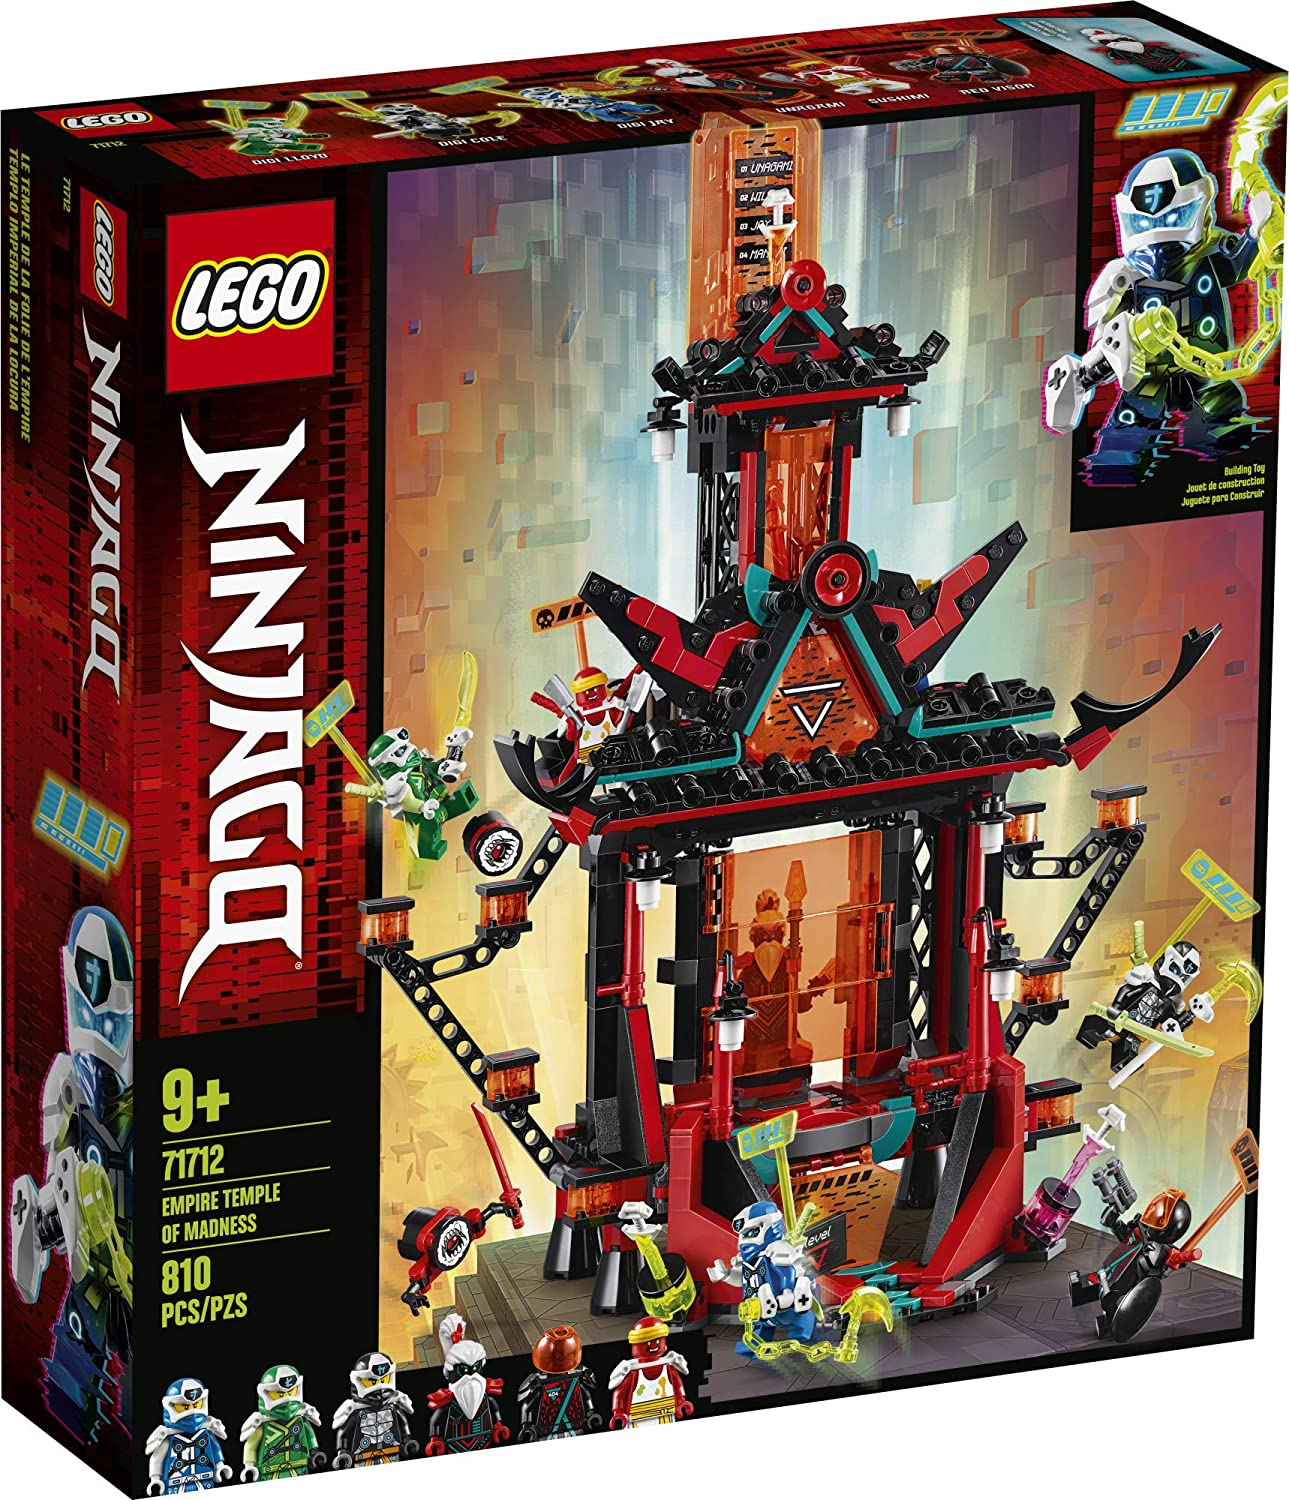 Amazon.com: LEGO NINJAGO Empire Temple of Madness 71712 ...